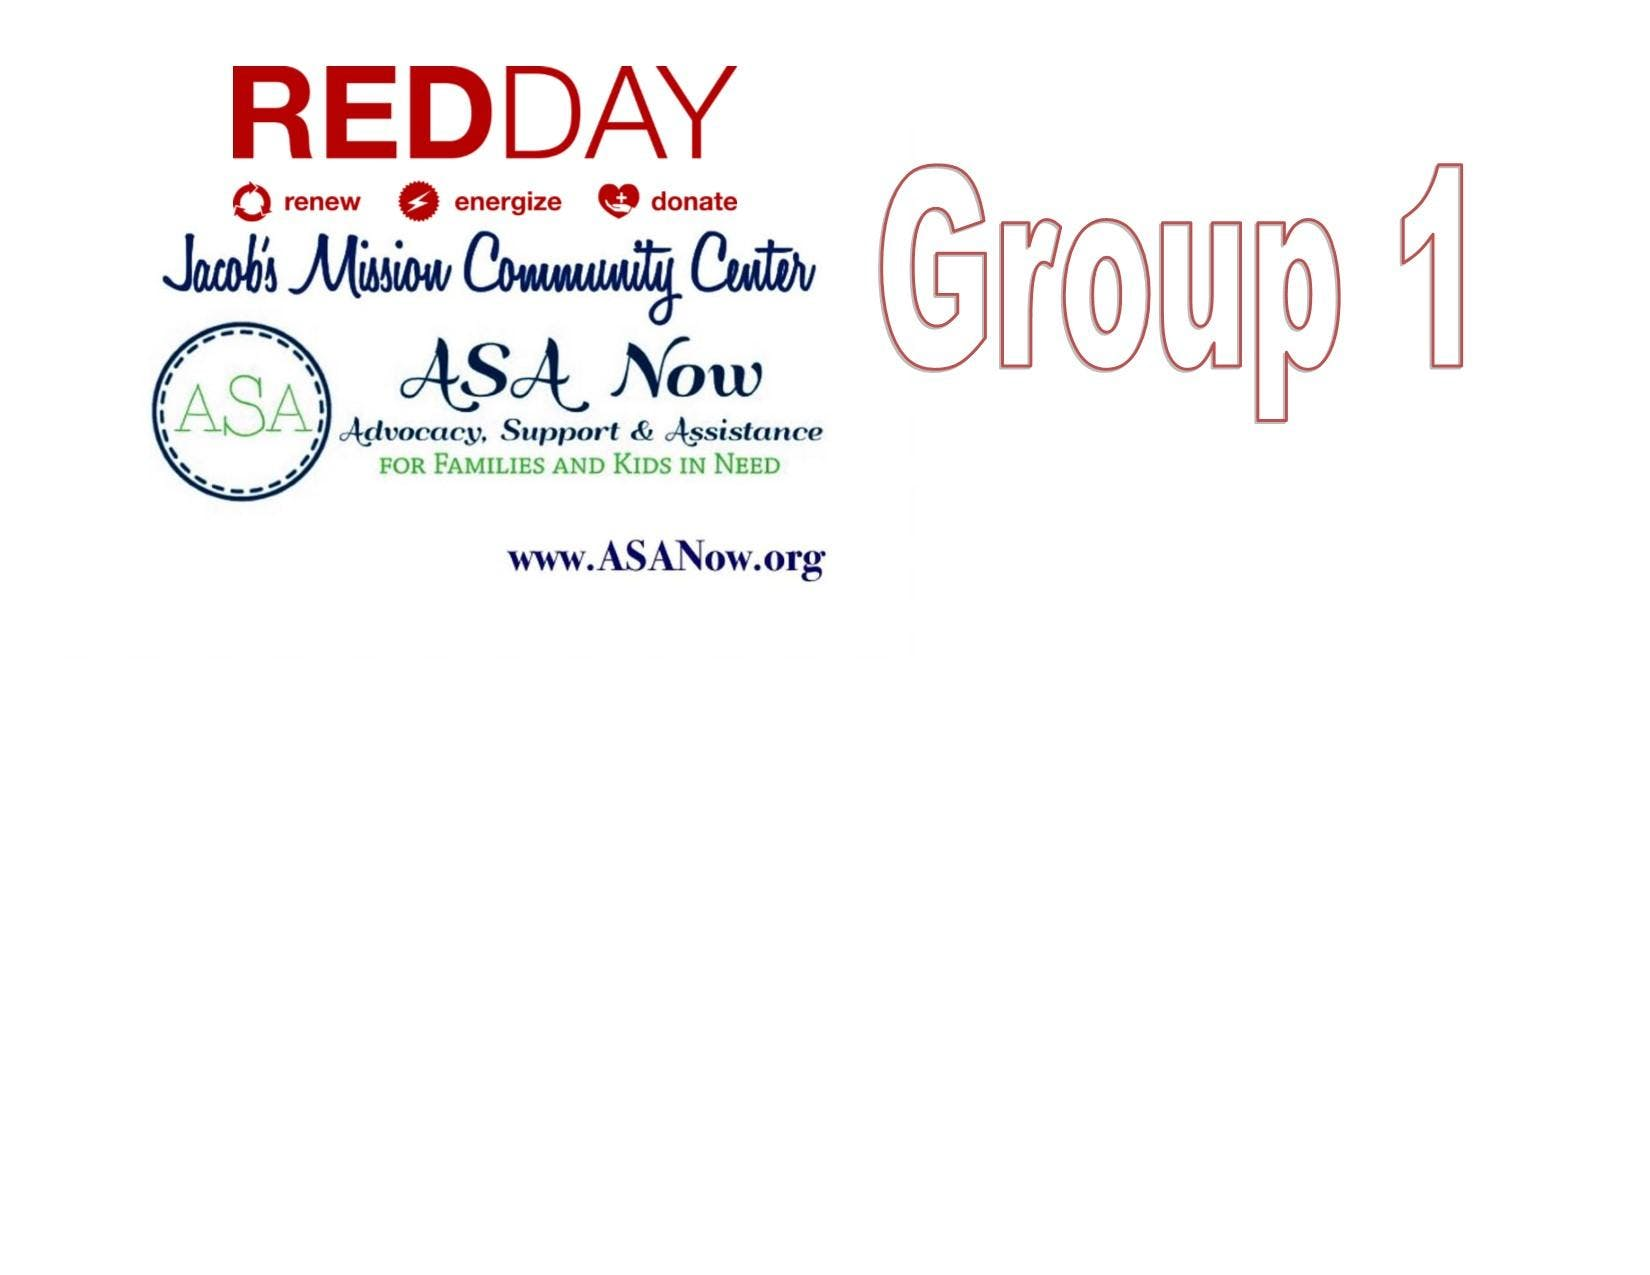 KWIF RED DAY- Jacob's Mission Community Center